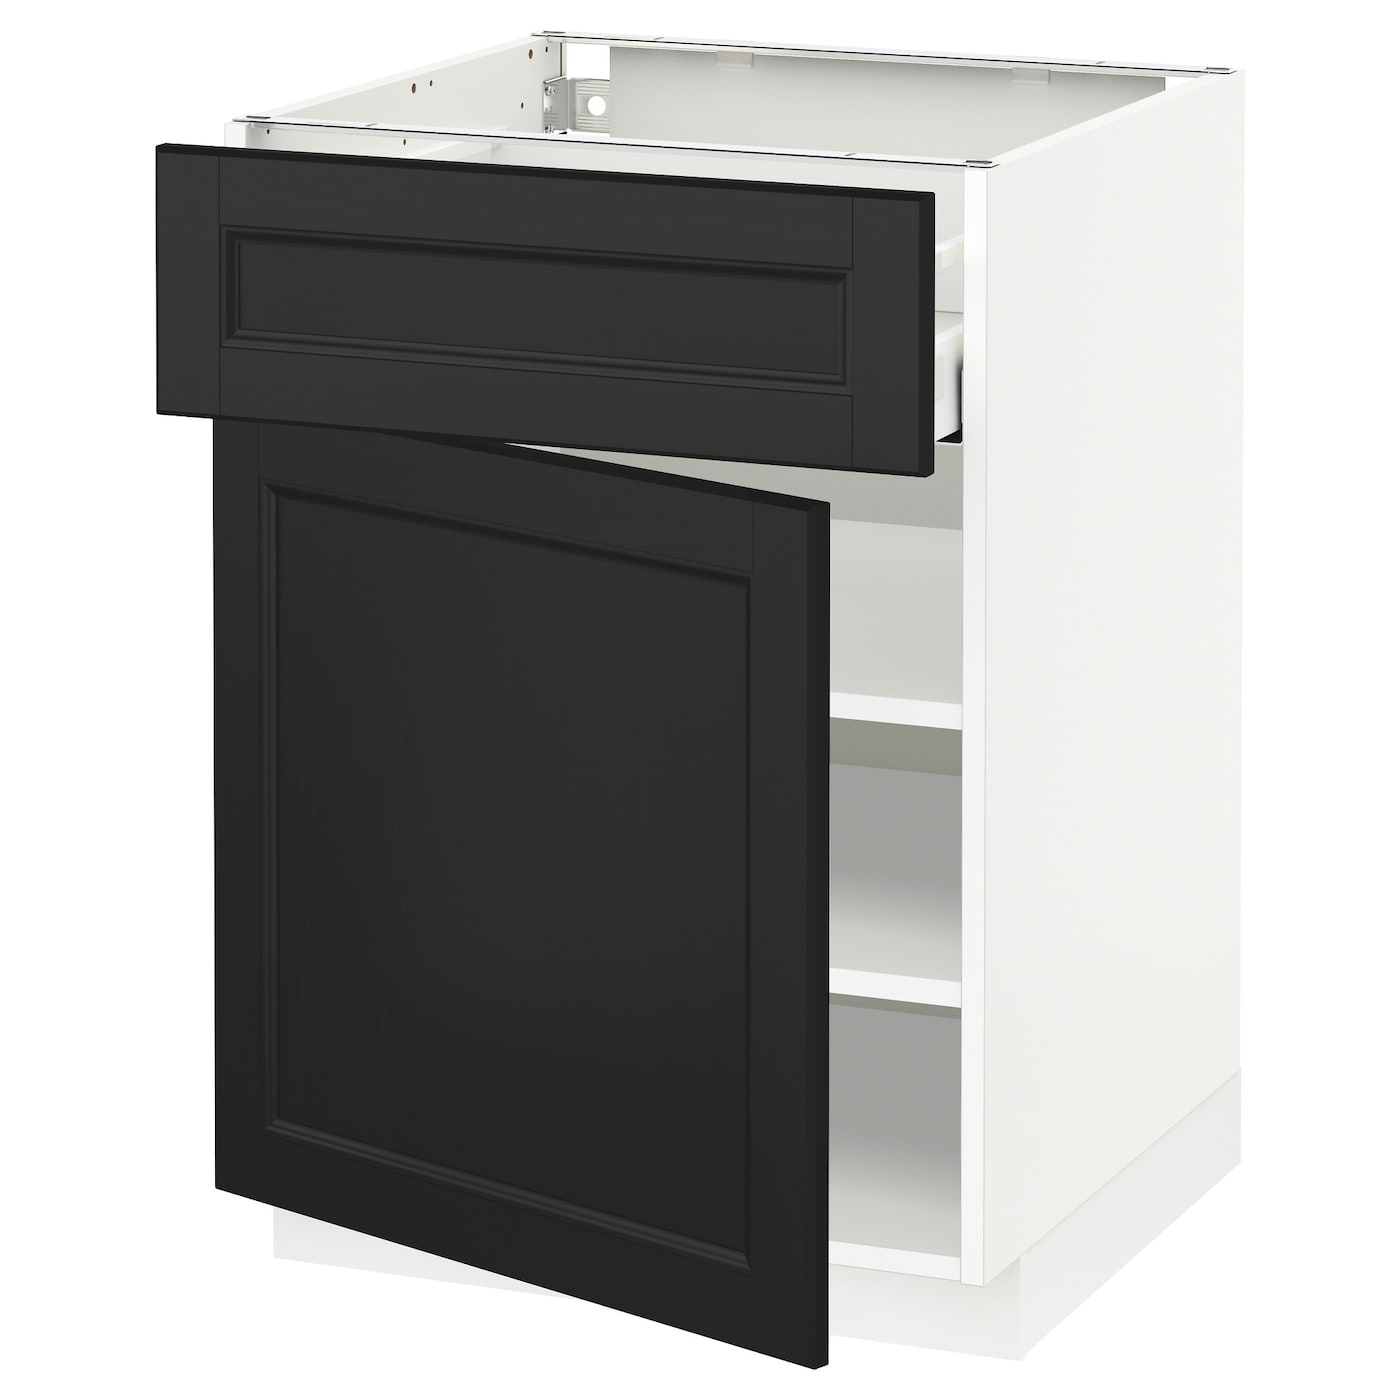 black kitchen base cabinets metod maximera base cabinet with drawer door white laxarby 12375